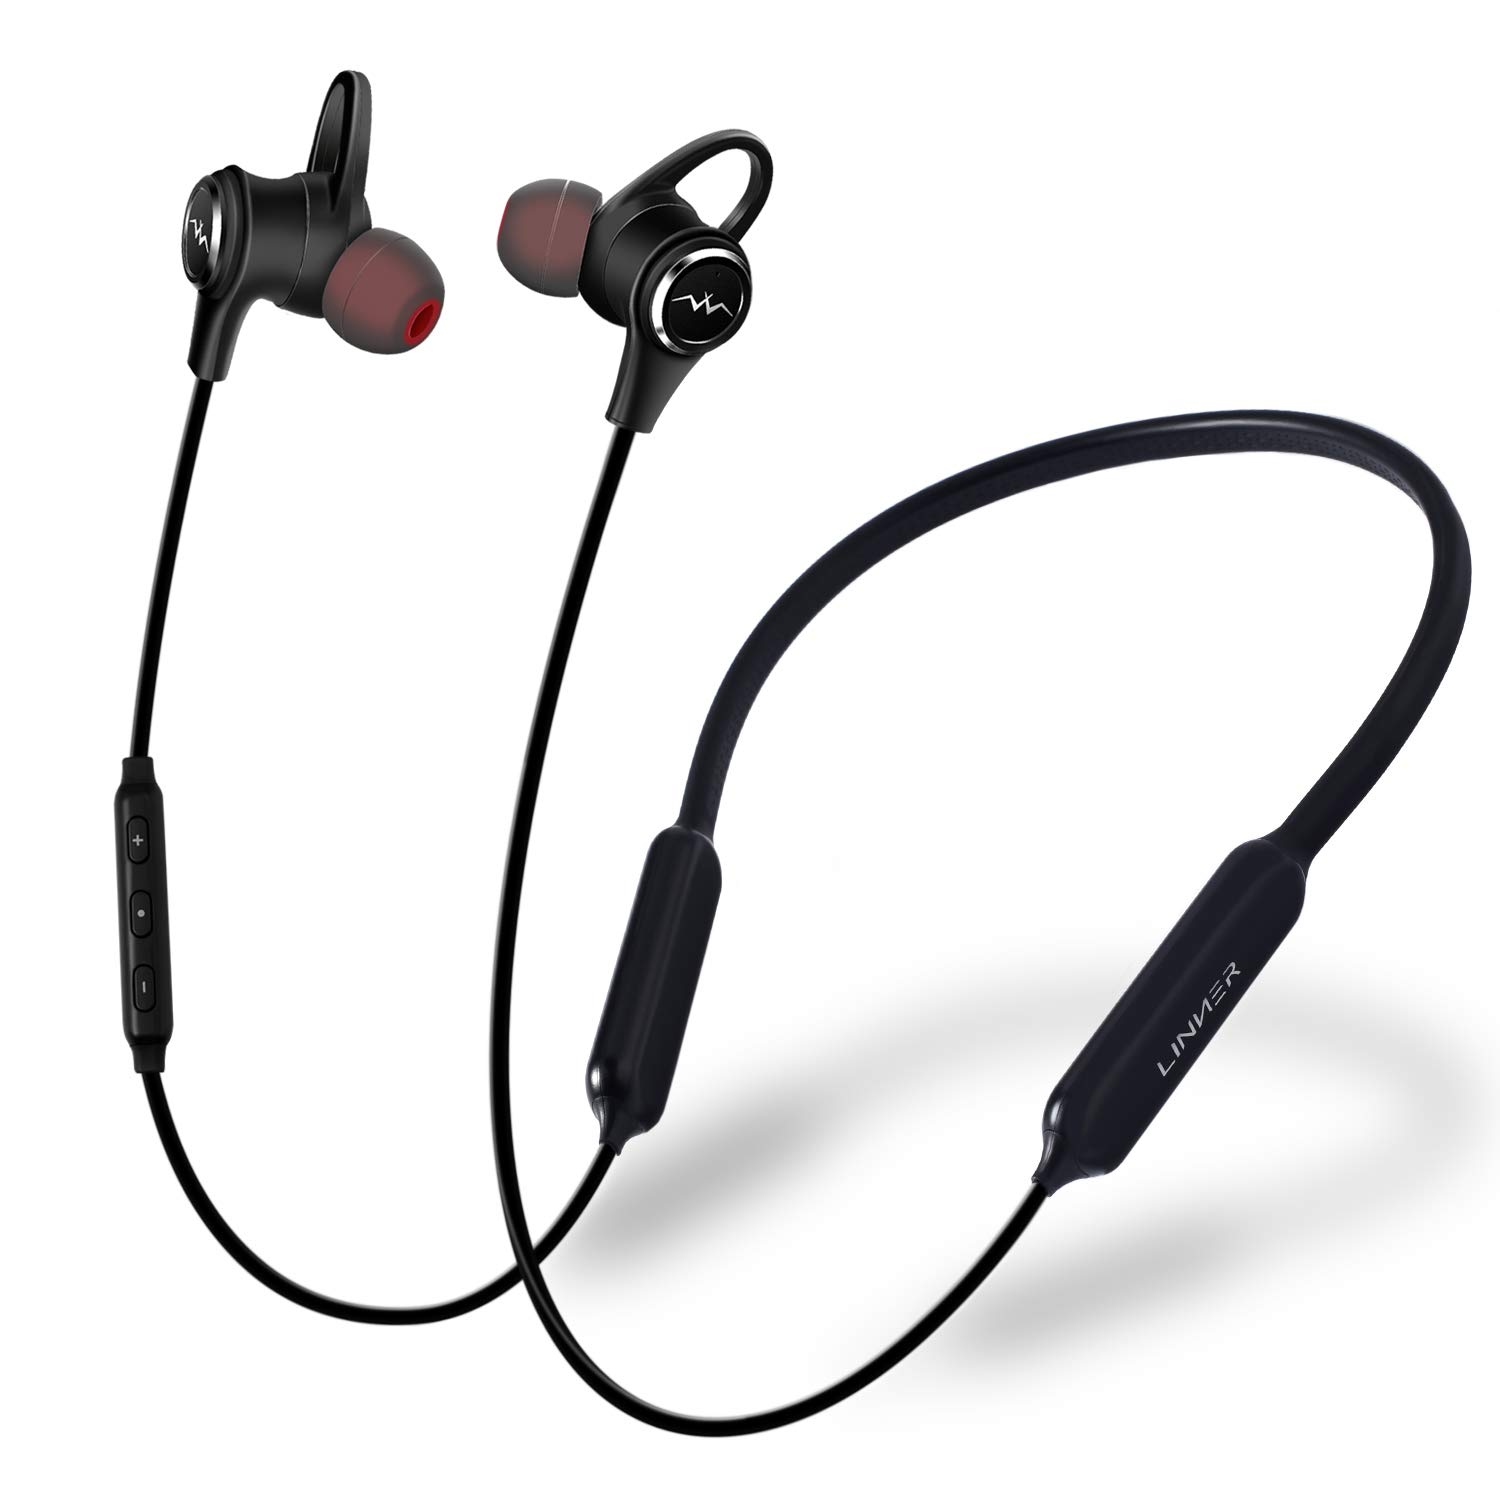 60a6145ec45 LINNER Active Noise Cancelling Headphones Earbuds, Wireless Bluetooth  Earbuds Extra Bass, Noise Cancelling Earphones with Microphone and Remote  (13 Hours ...